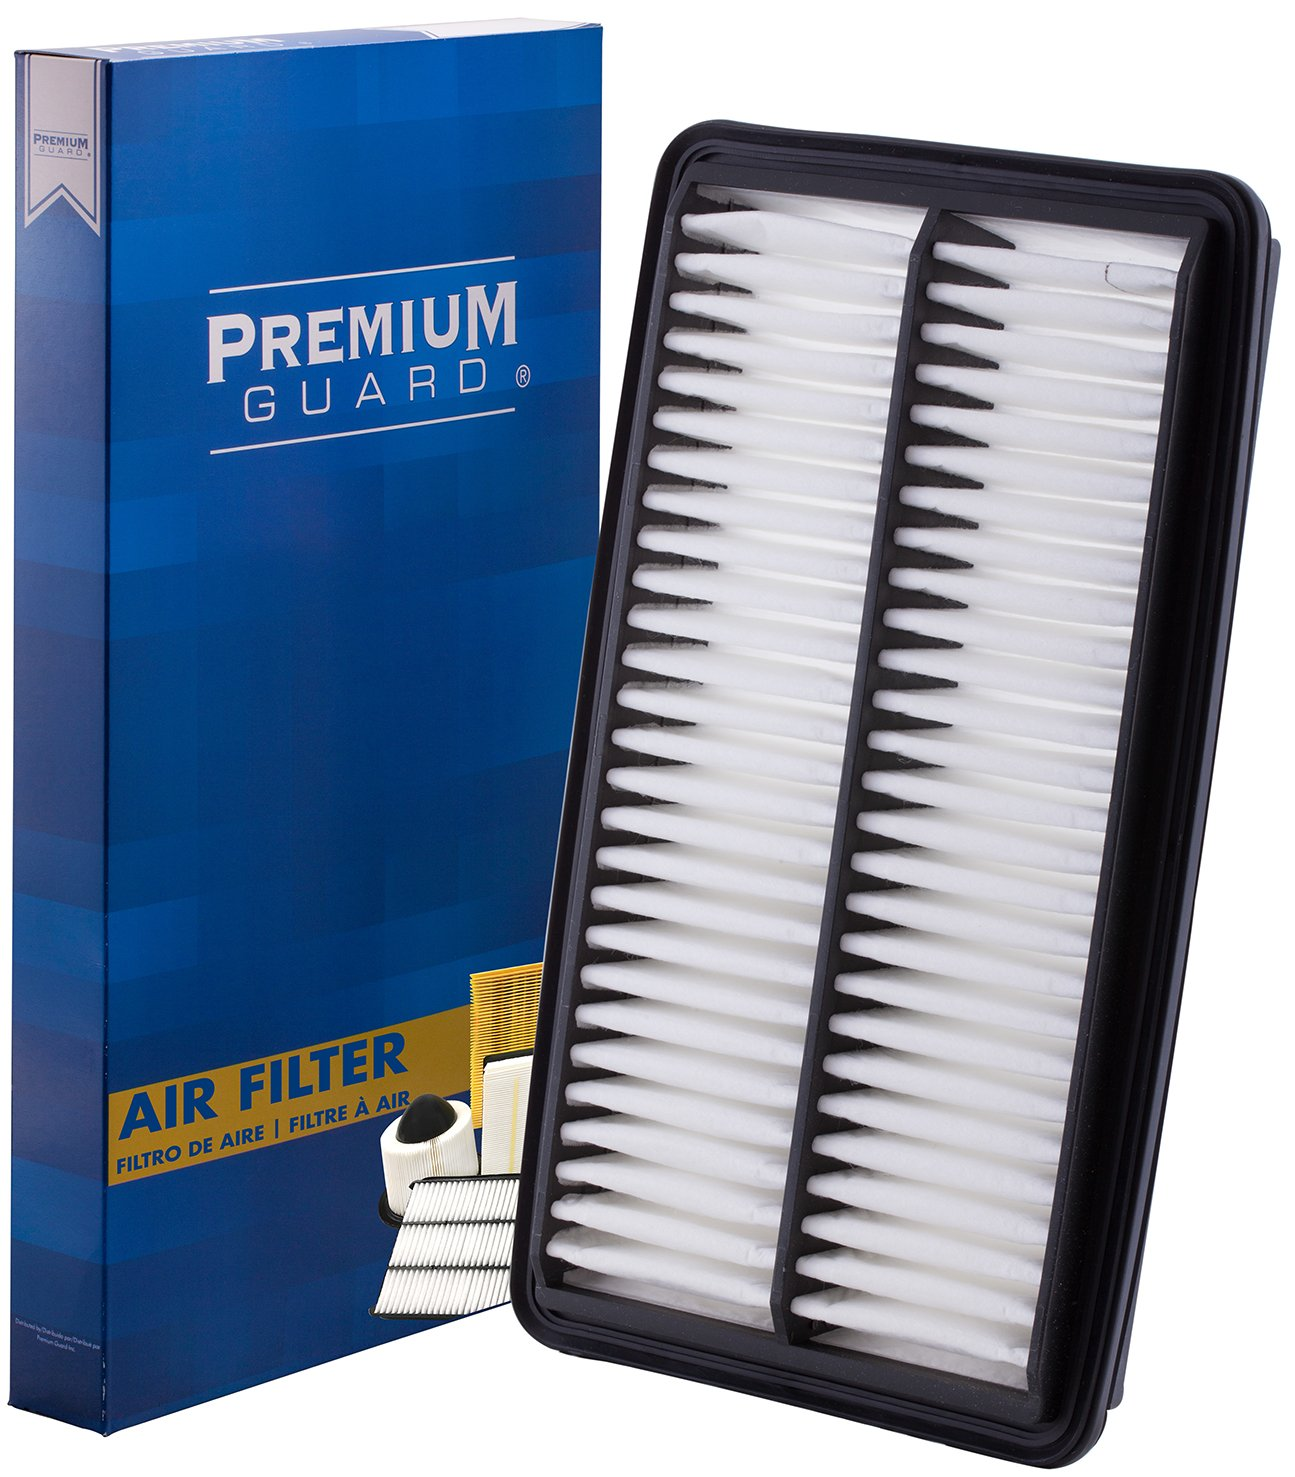 Premium Guard Air Filter PA Fits Acura MDX - Acura mdx air filter